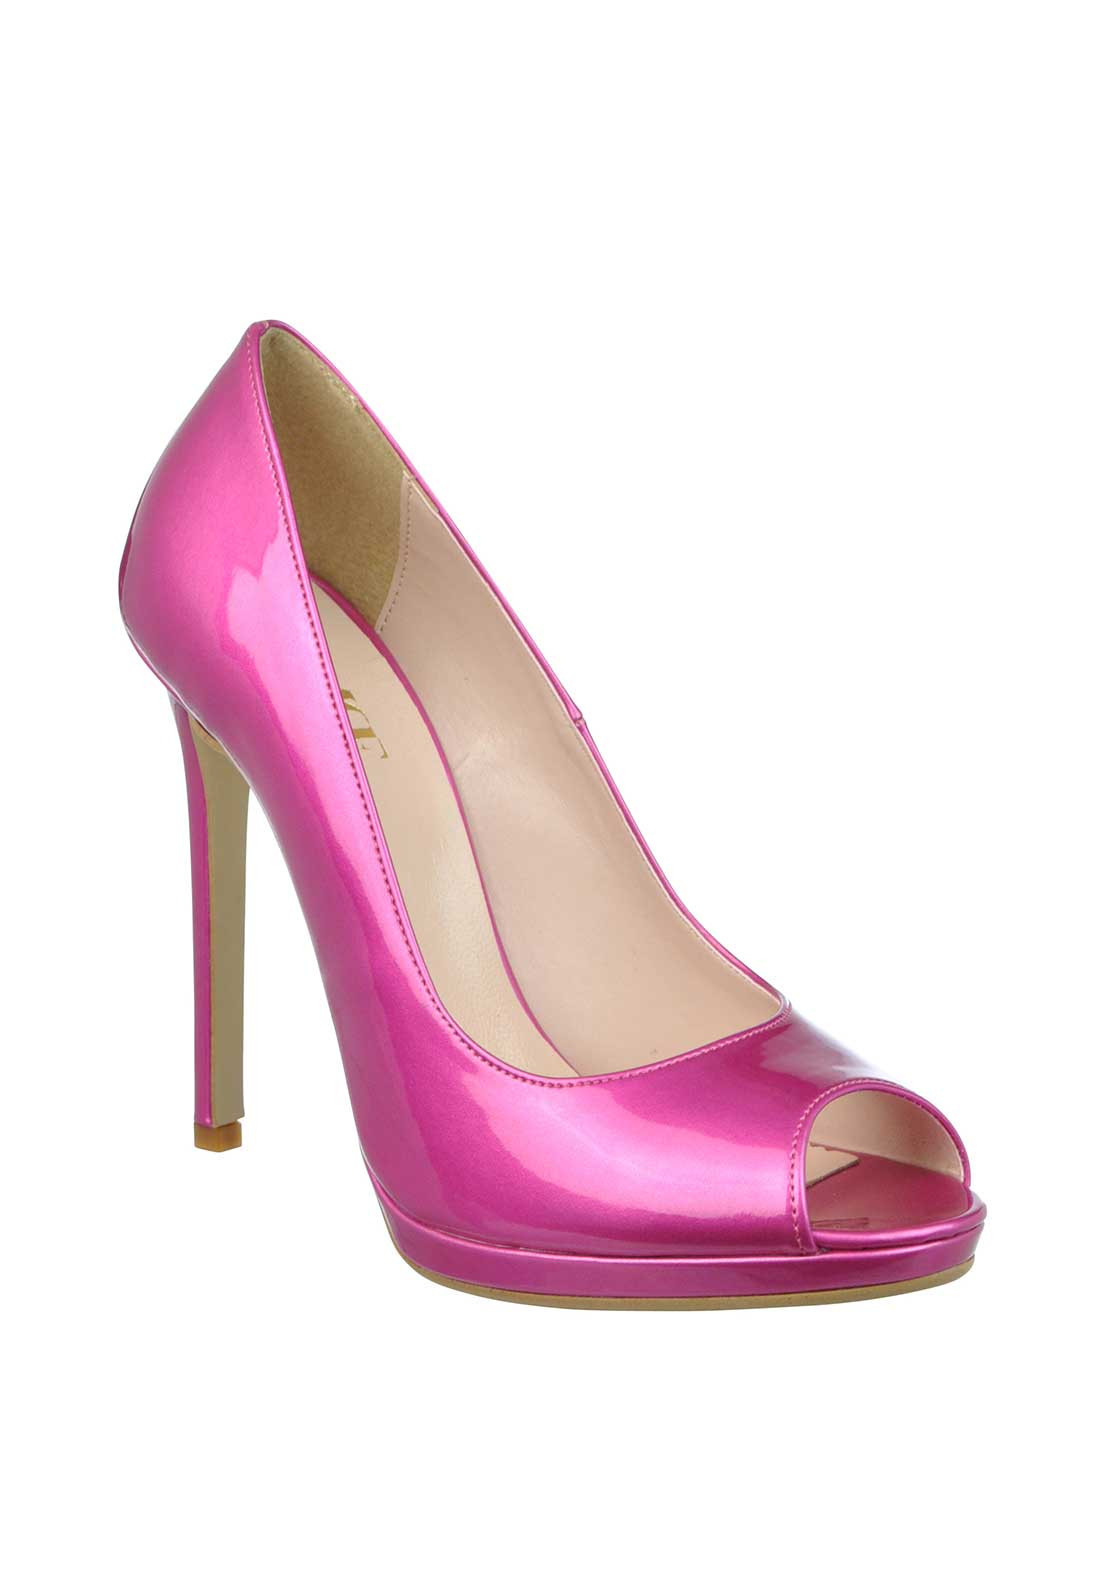 McElhinney's Patent Peep Toe Heeled Shoes, Fuschia